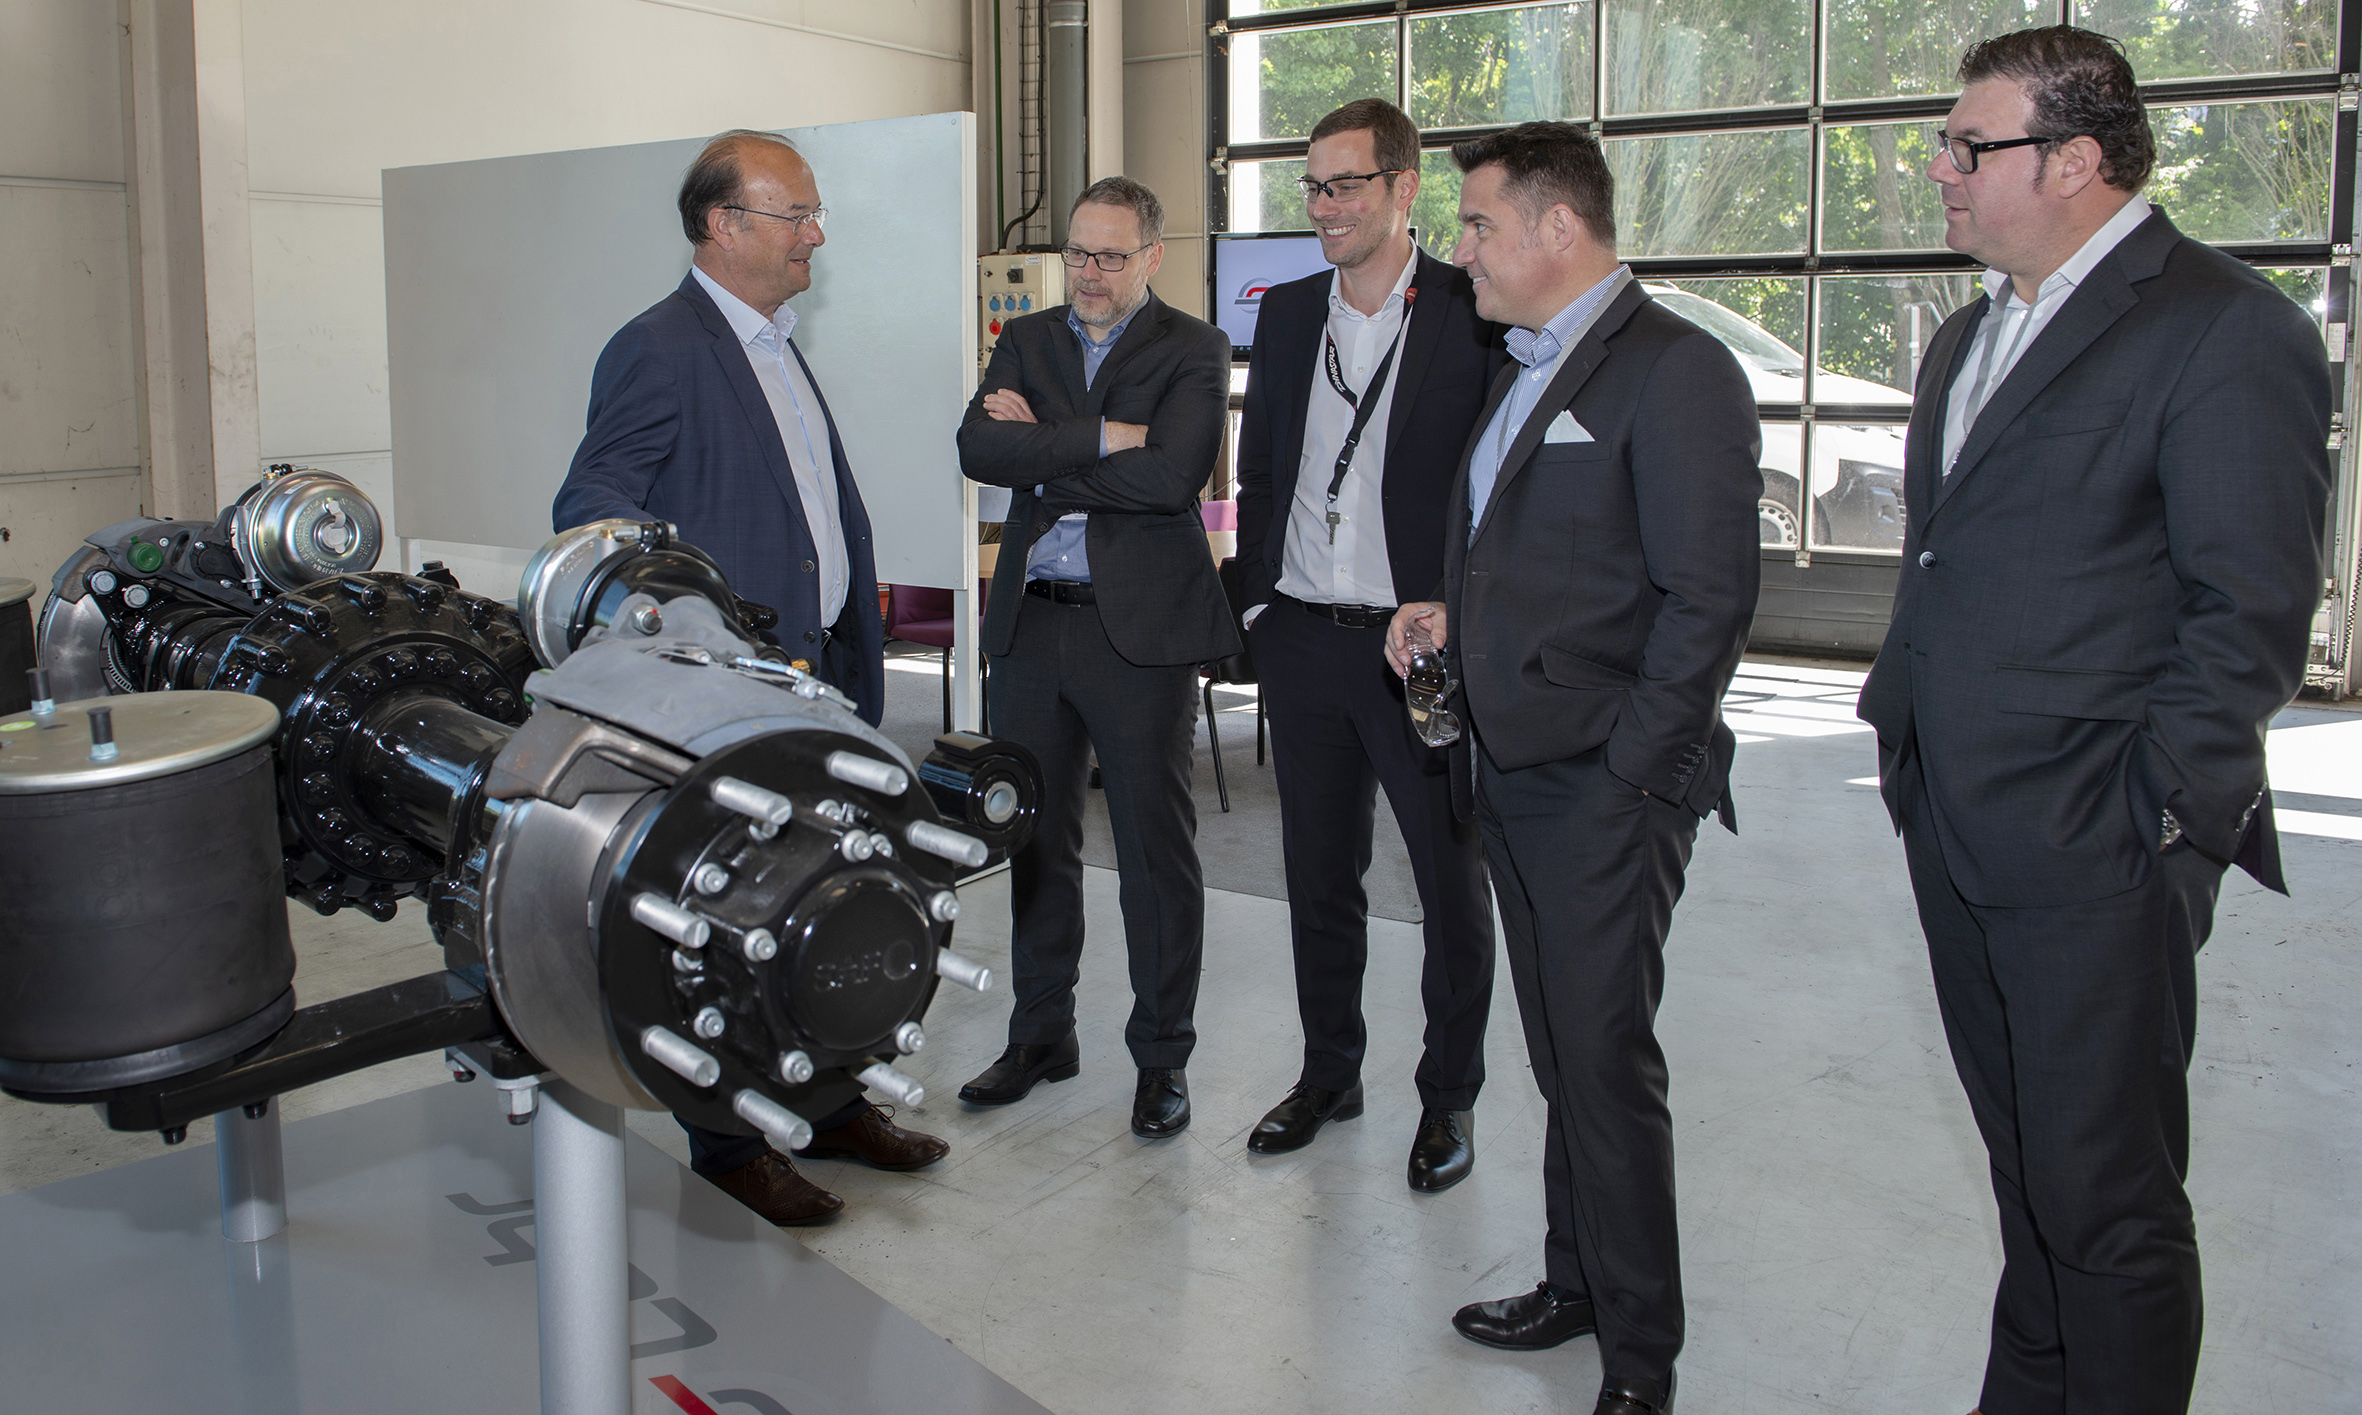 Mr Fity, Managing Director of Lohr Group, presents the Axeal electric axle to the SAF Holland group delegation.